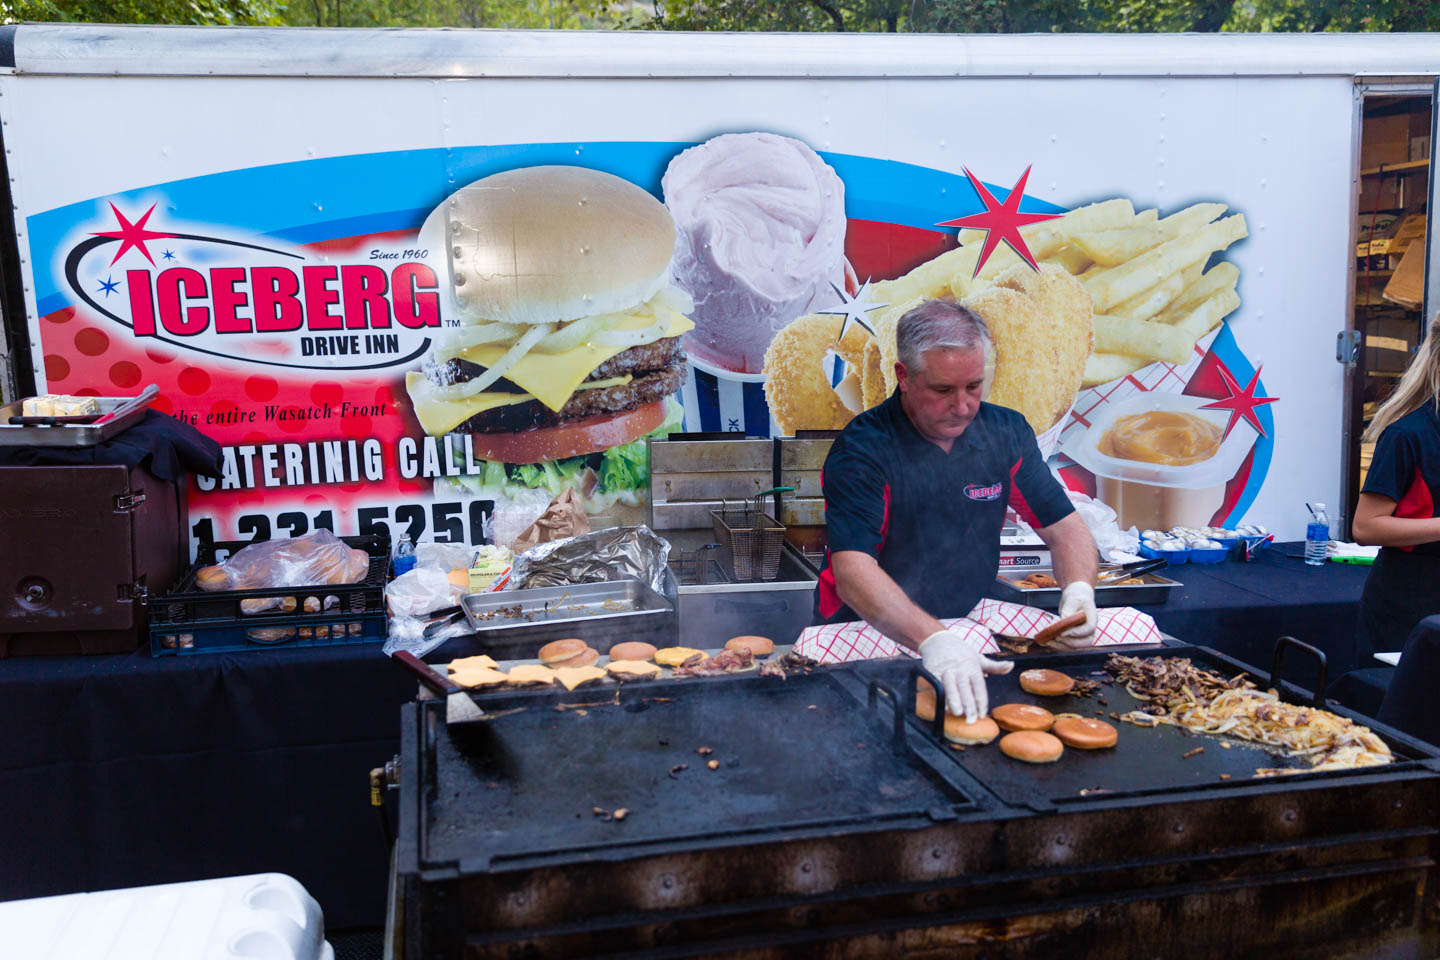 Iceberg catered an event I photographed